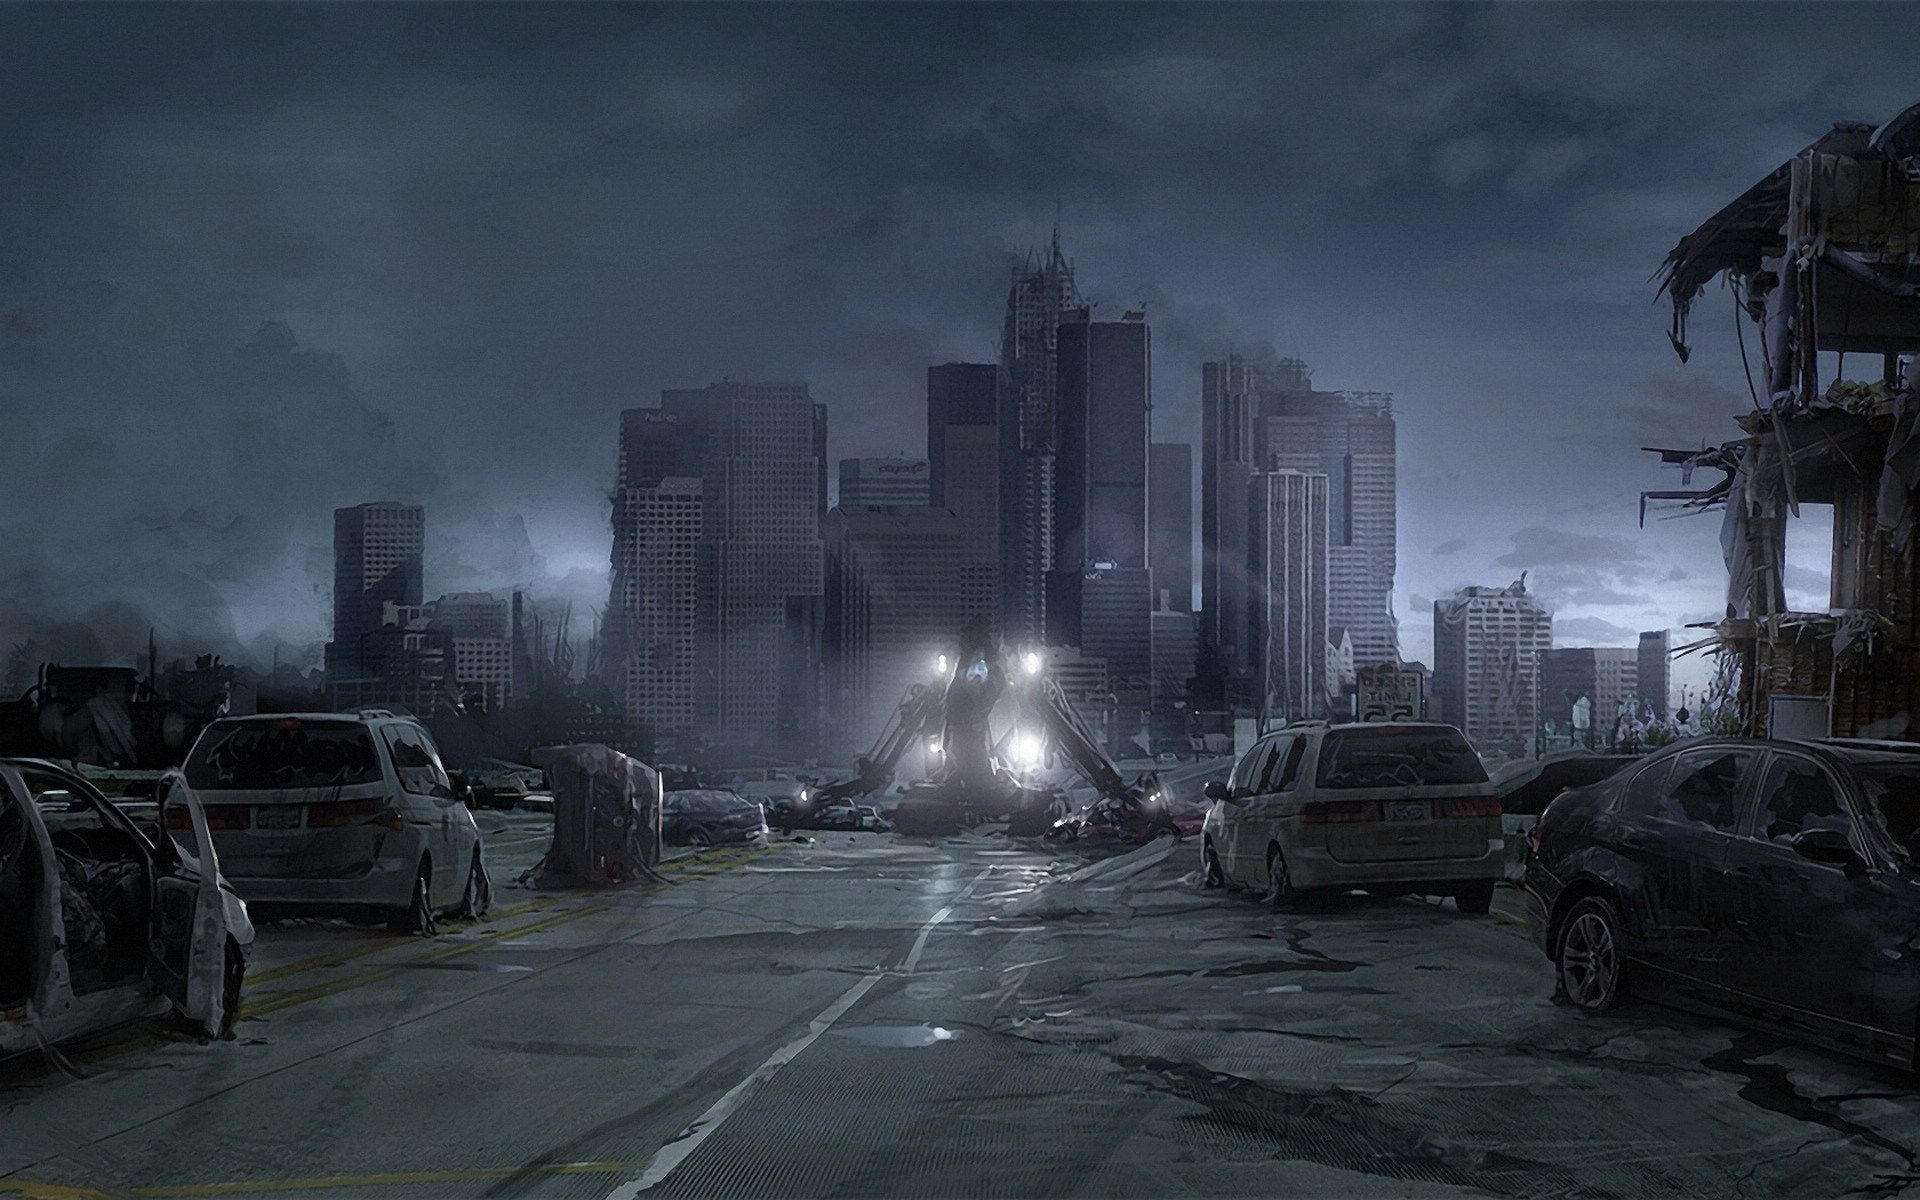 Apocalyptic City Wallpapers Top Free Apocalyptic City Backgrounds Wallpaperaccess